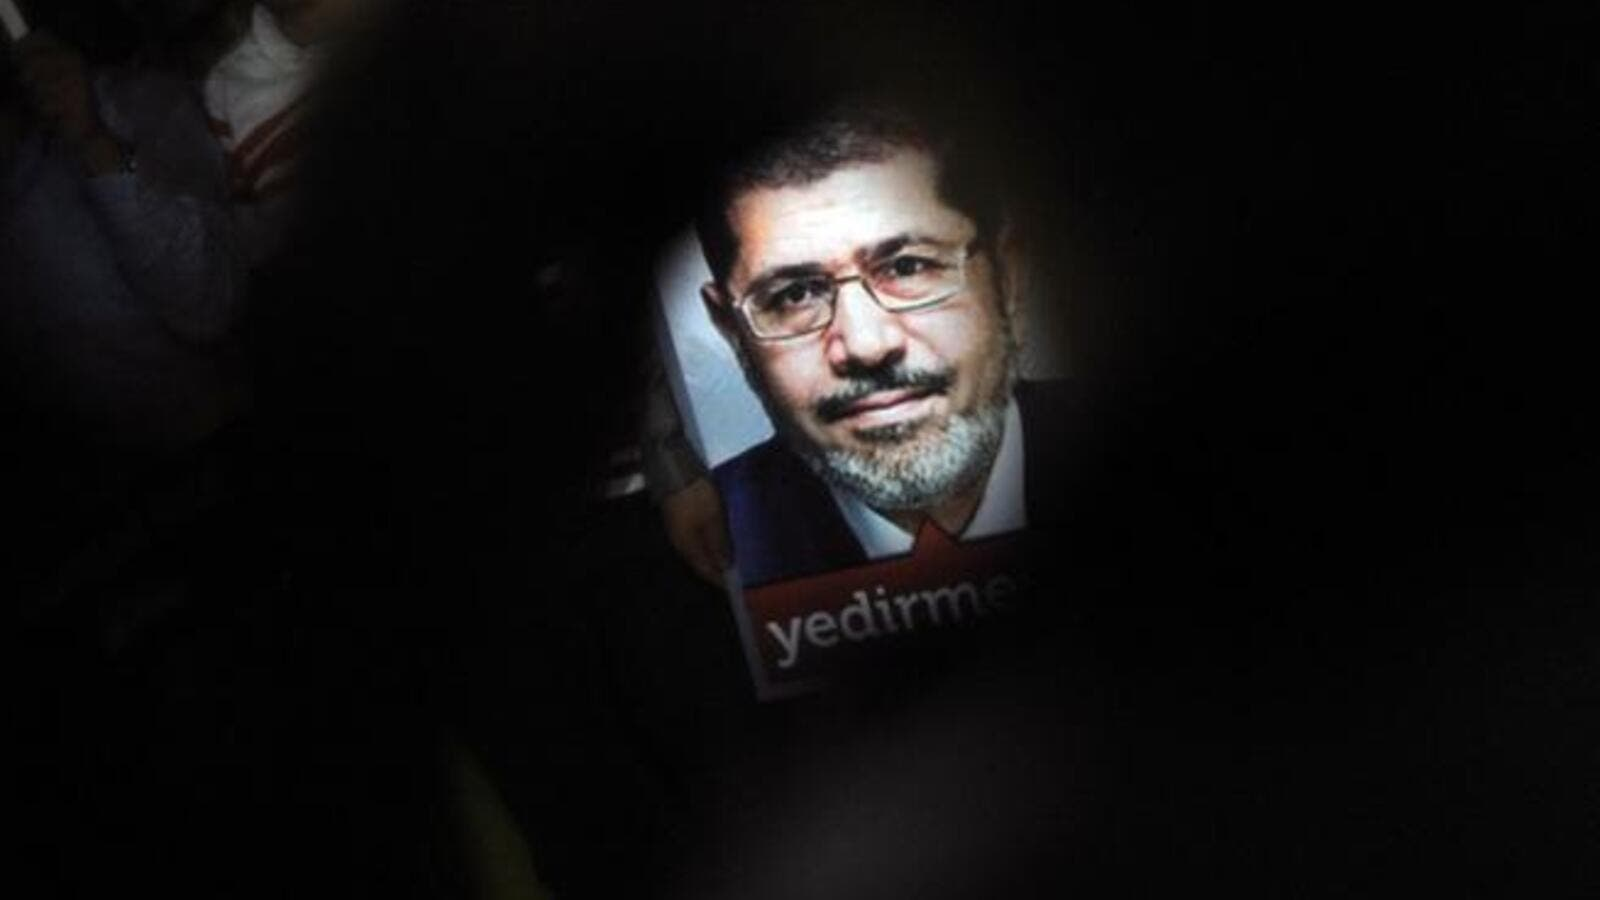 A poster of Egypt's President Mohammed Morsi is seen during a pro-Morsi demonstration on July 1, 2013 in Istanbul (Ozan Kose / AFP)